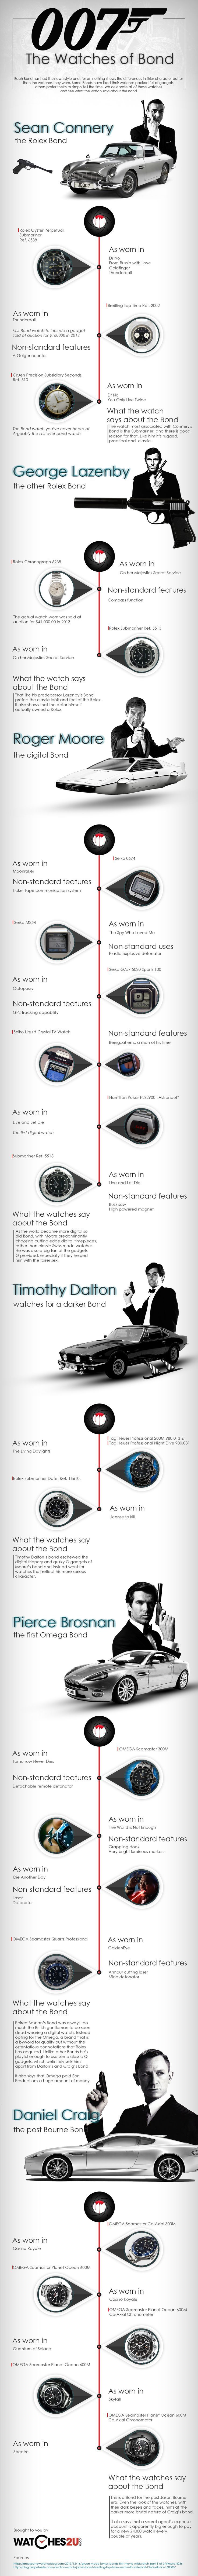 In this infographic, Watches2U hails every watch that has graced the wrist of James Bond and go on to say what their choice of watch says about their interpretation of the role. From the classic Rolex Submariner, through the digital era of Moore, to the Omega years of Brosnan and Craig, every watch has added in its own way to the story of James Bond. - best mens gold watches, mens wrist watches for sale, cheap mens watches for sale